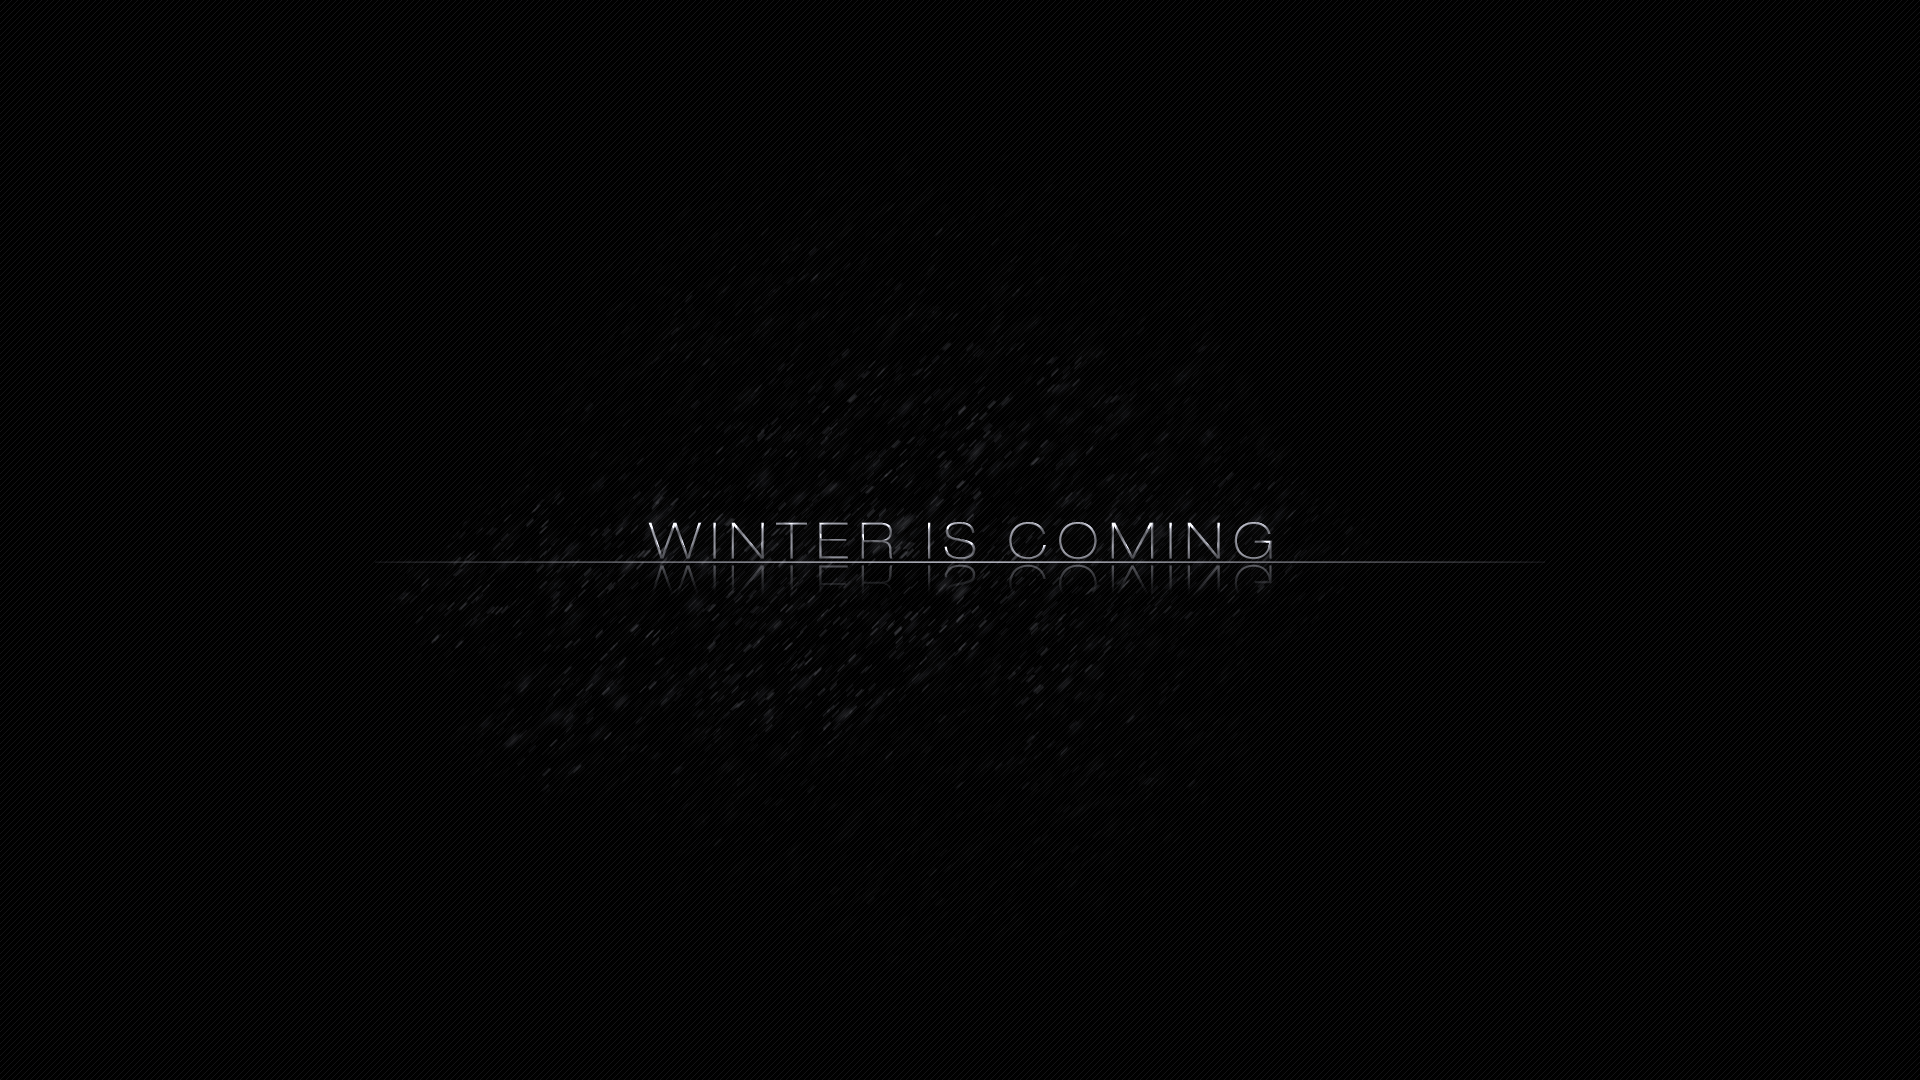 Winter Is Coming Wallpapers 1920x1080